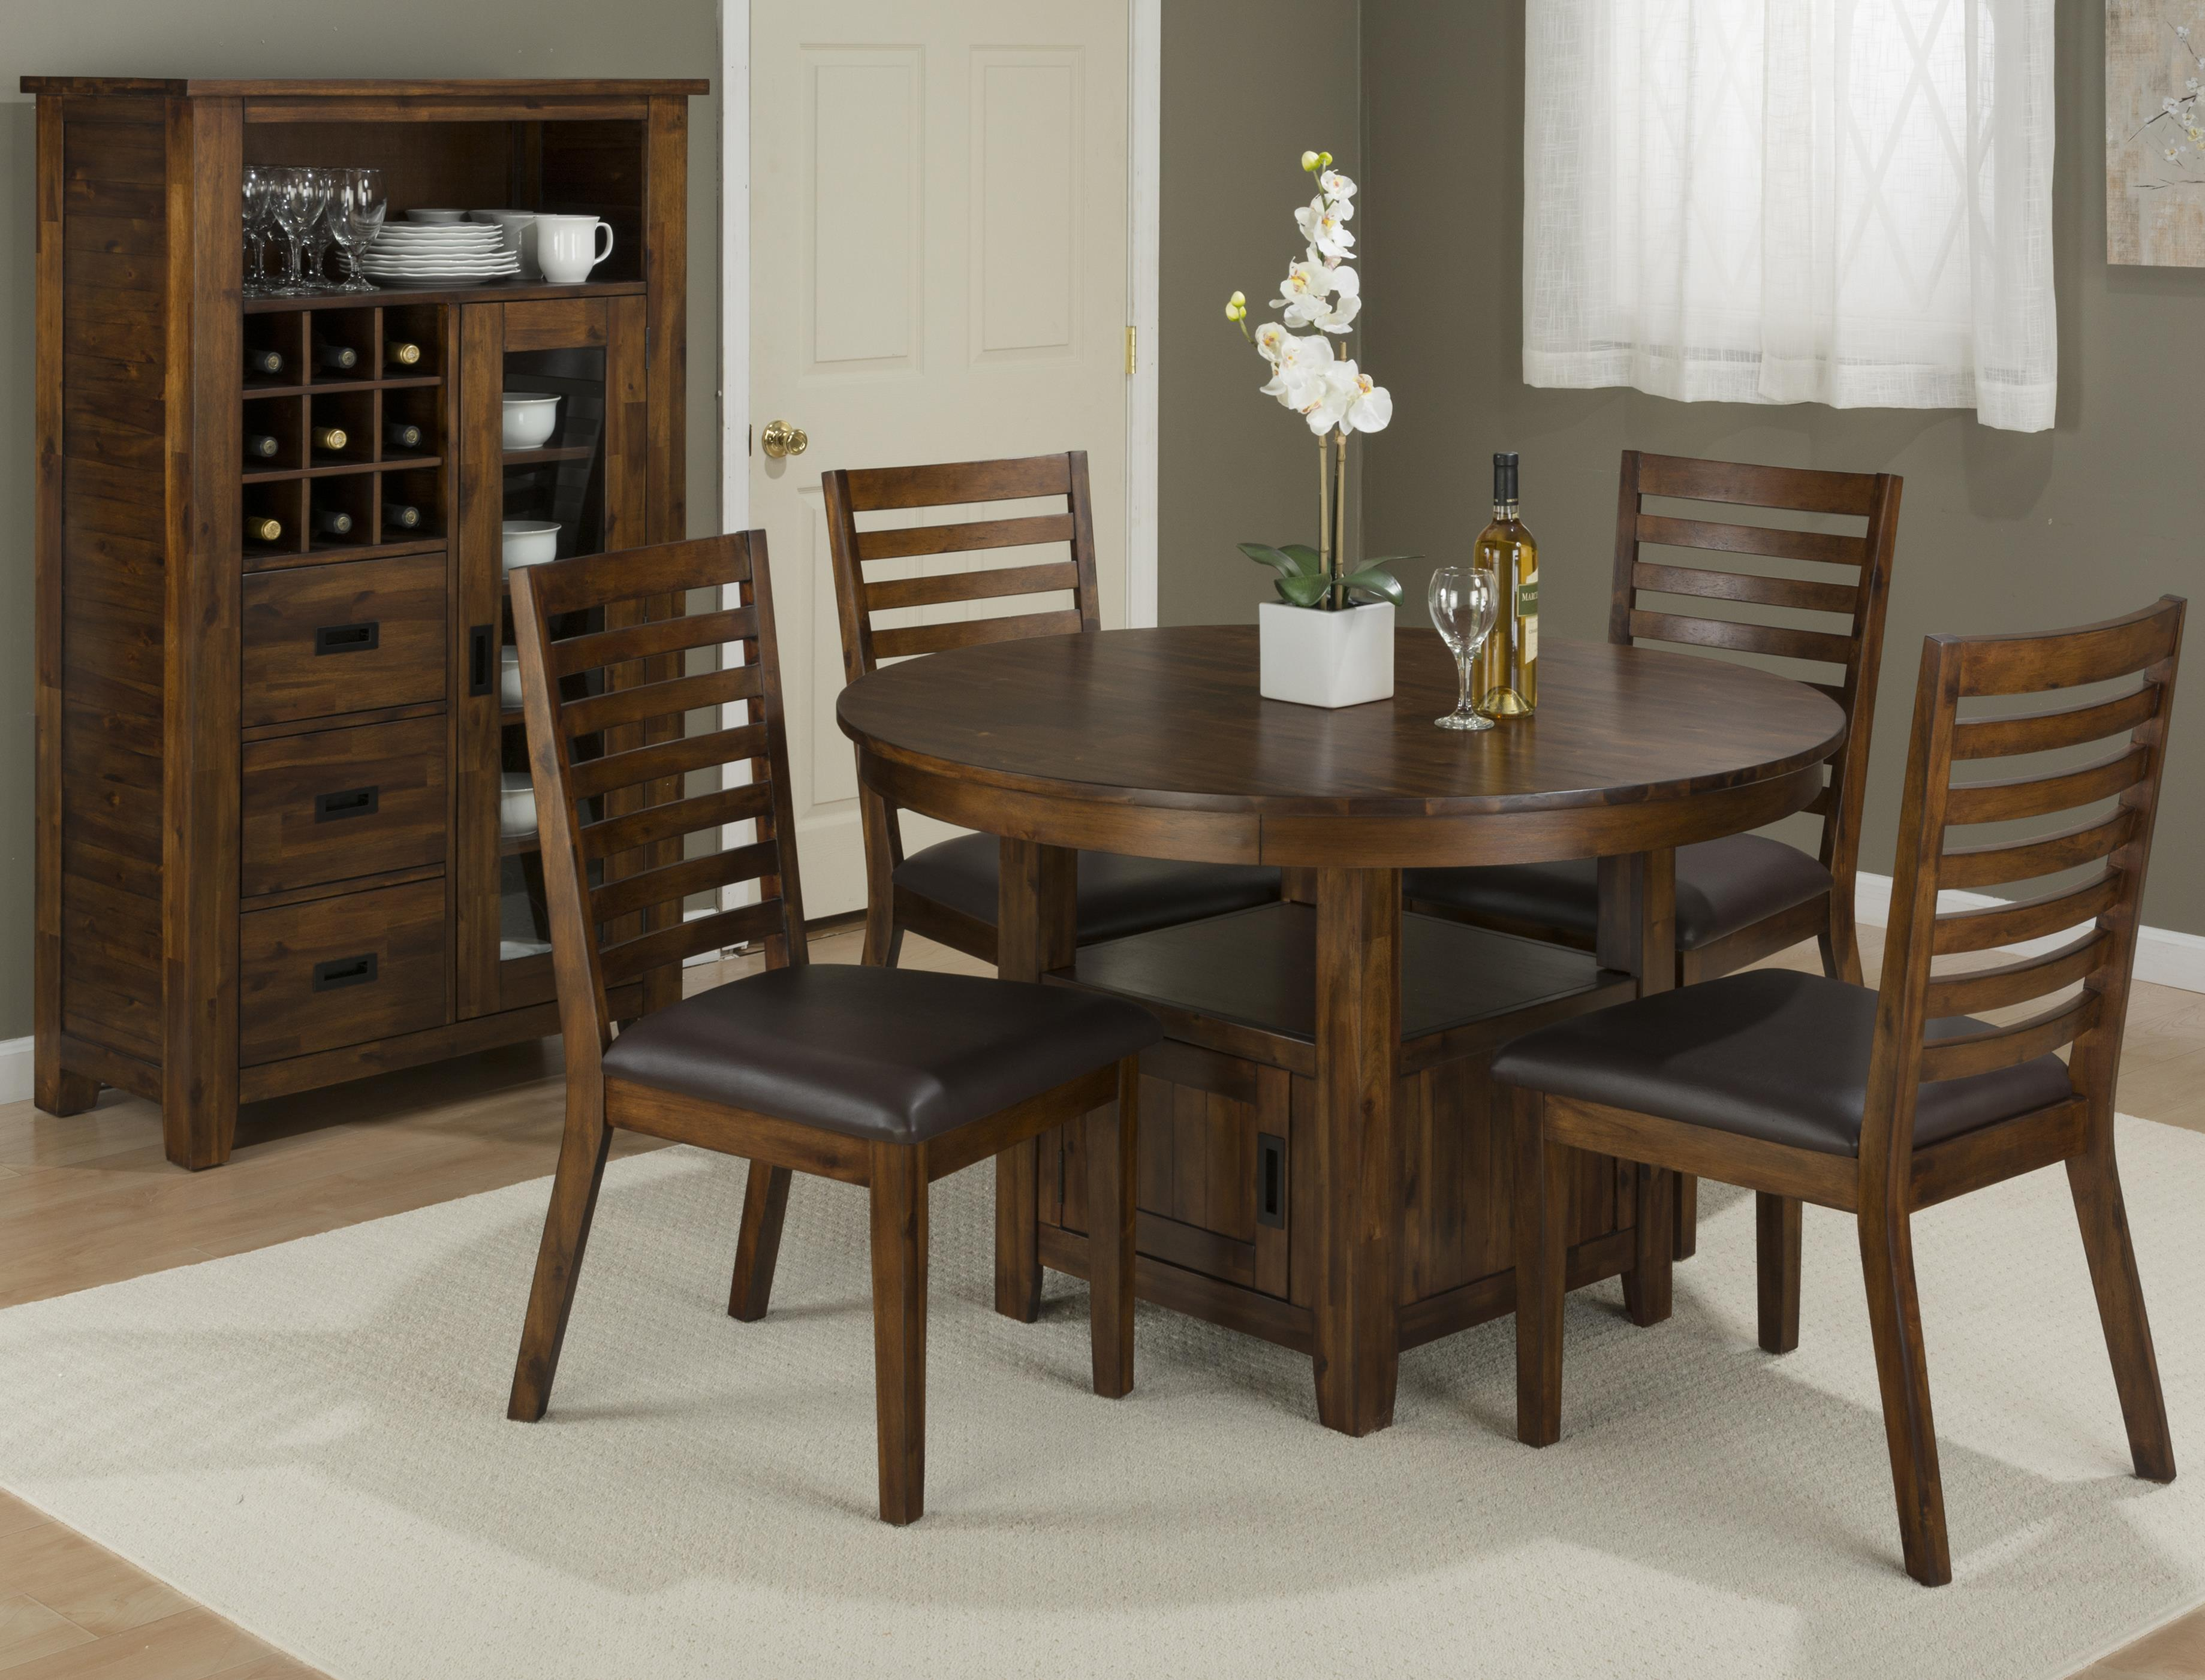 Jofran Coolidge Corner Casual Dining Room Group - Item Number: 1501 Dining Room Group 1